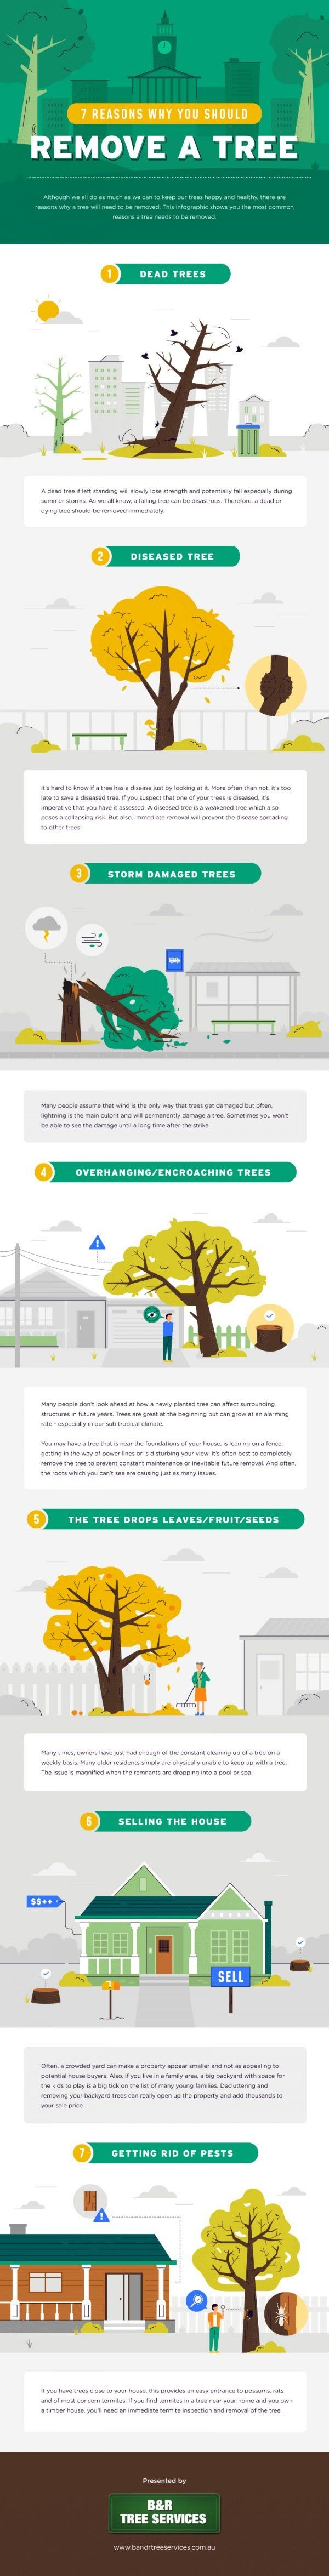 7 Why Reasons You Should Remove a Tree #infographic